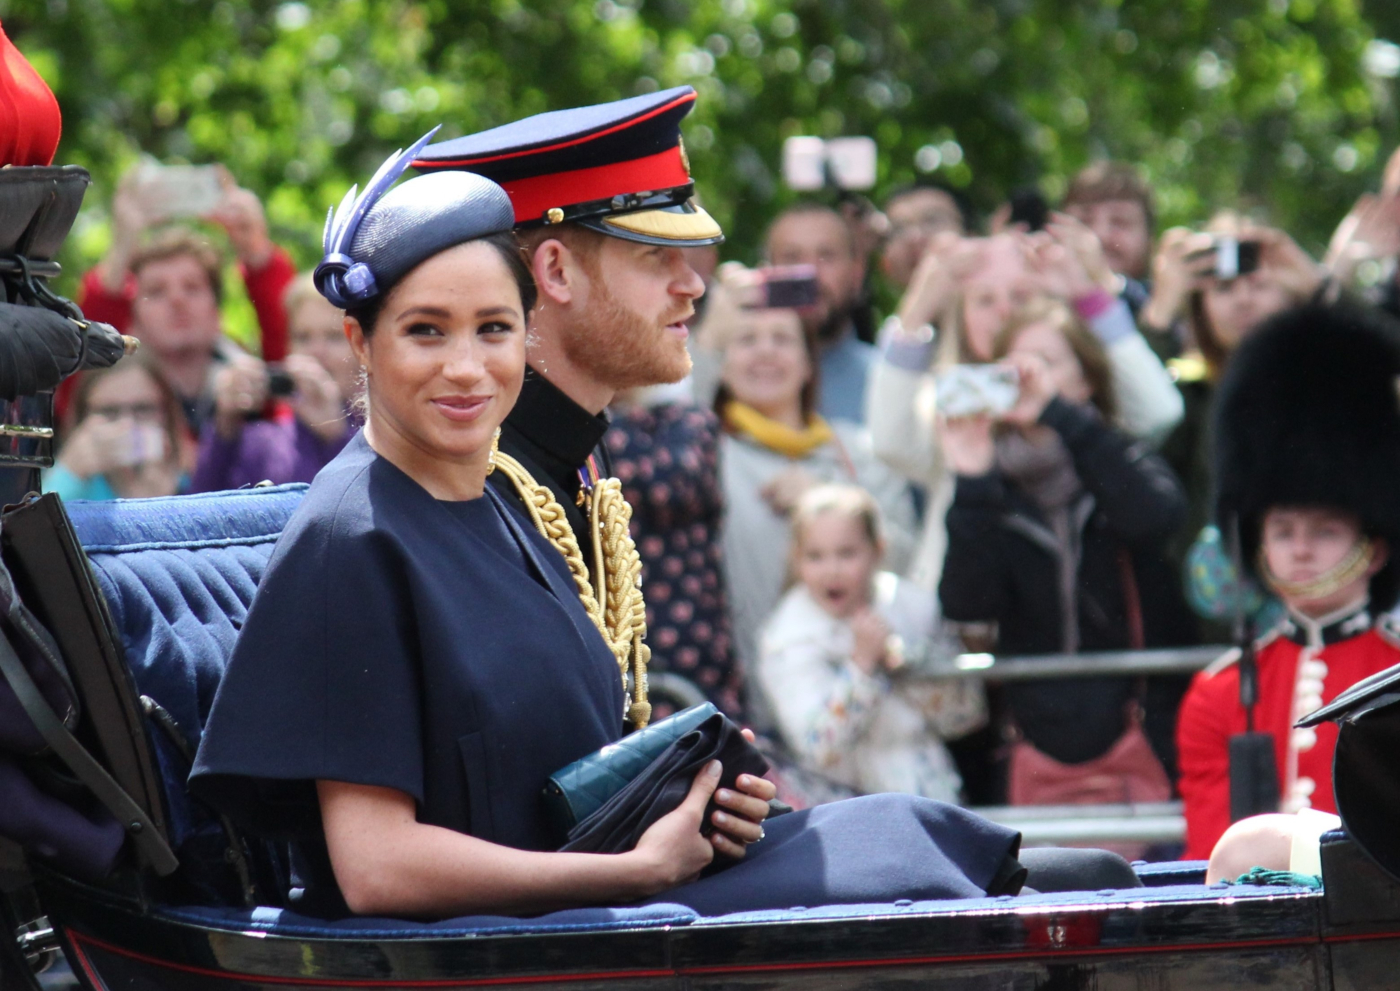 Queen 'Entirely Supportive' Of Harry And Meghan's Desire To Step Back As Senior Royals